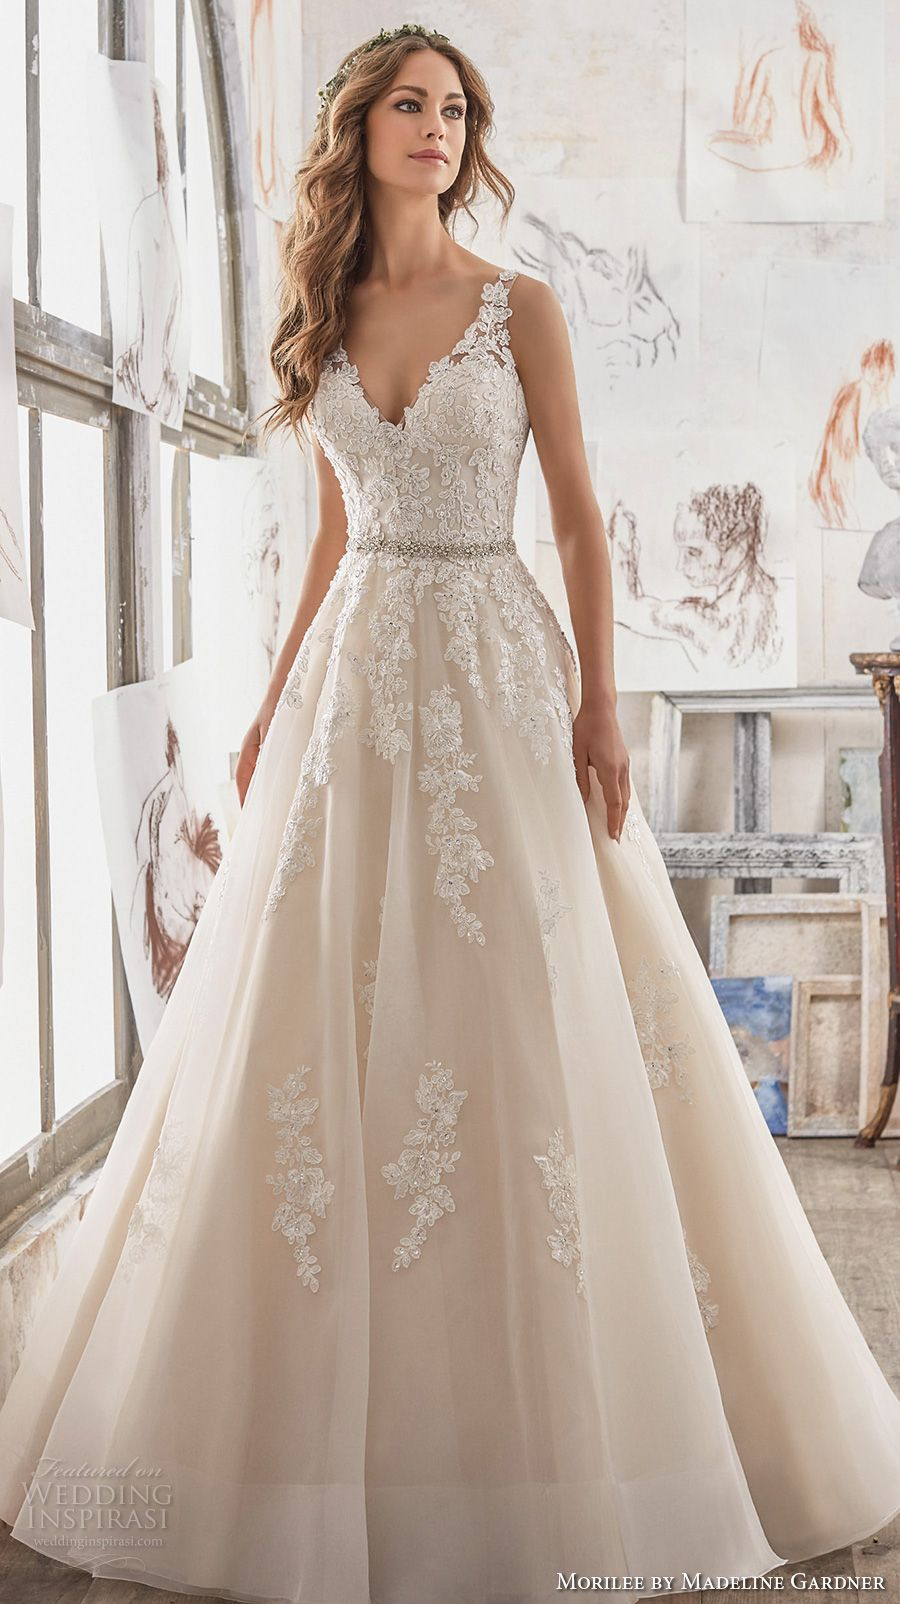 Morilee by madeline gardner spring 2017 wedding dresses for Spring wedding bridesmaid dress colors